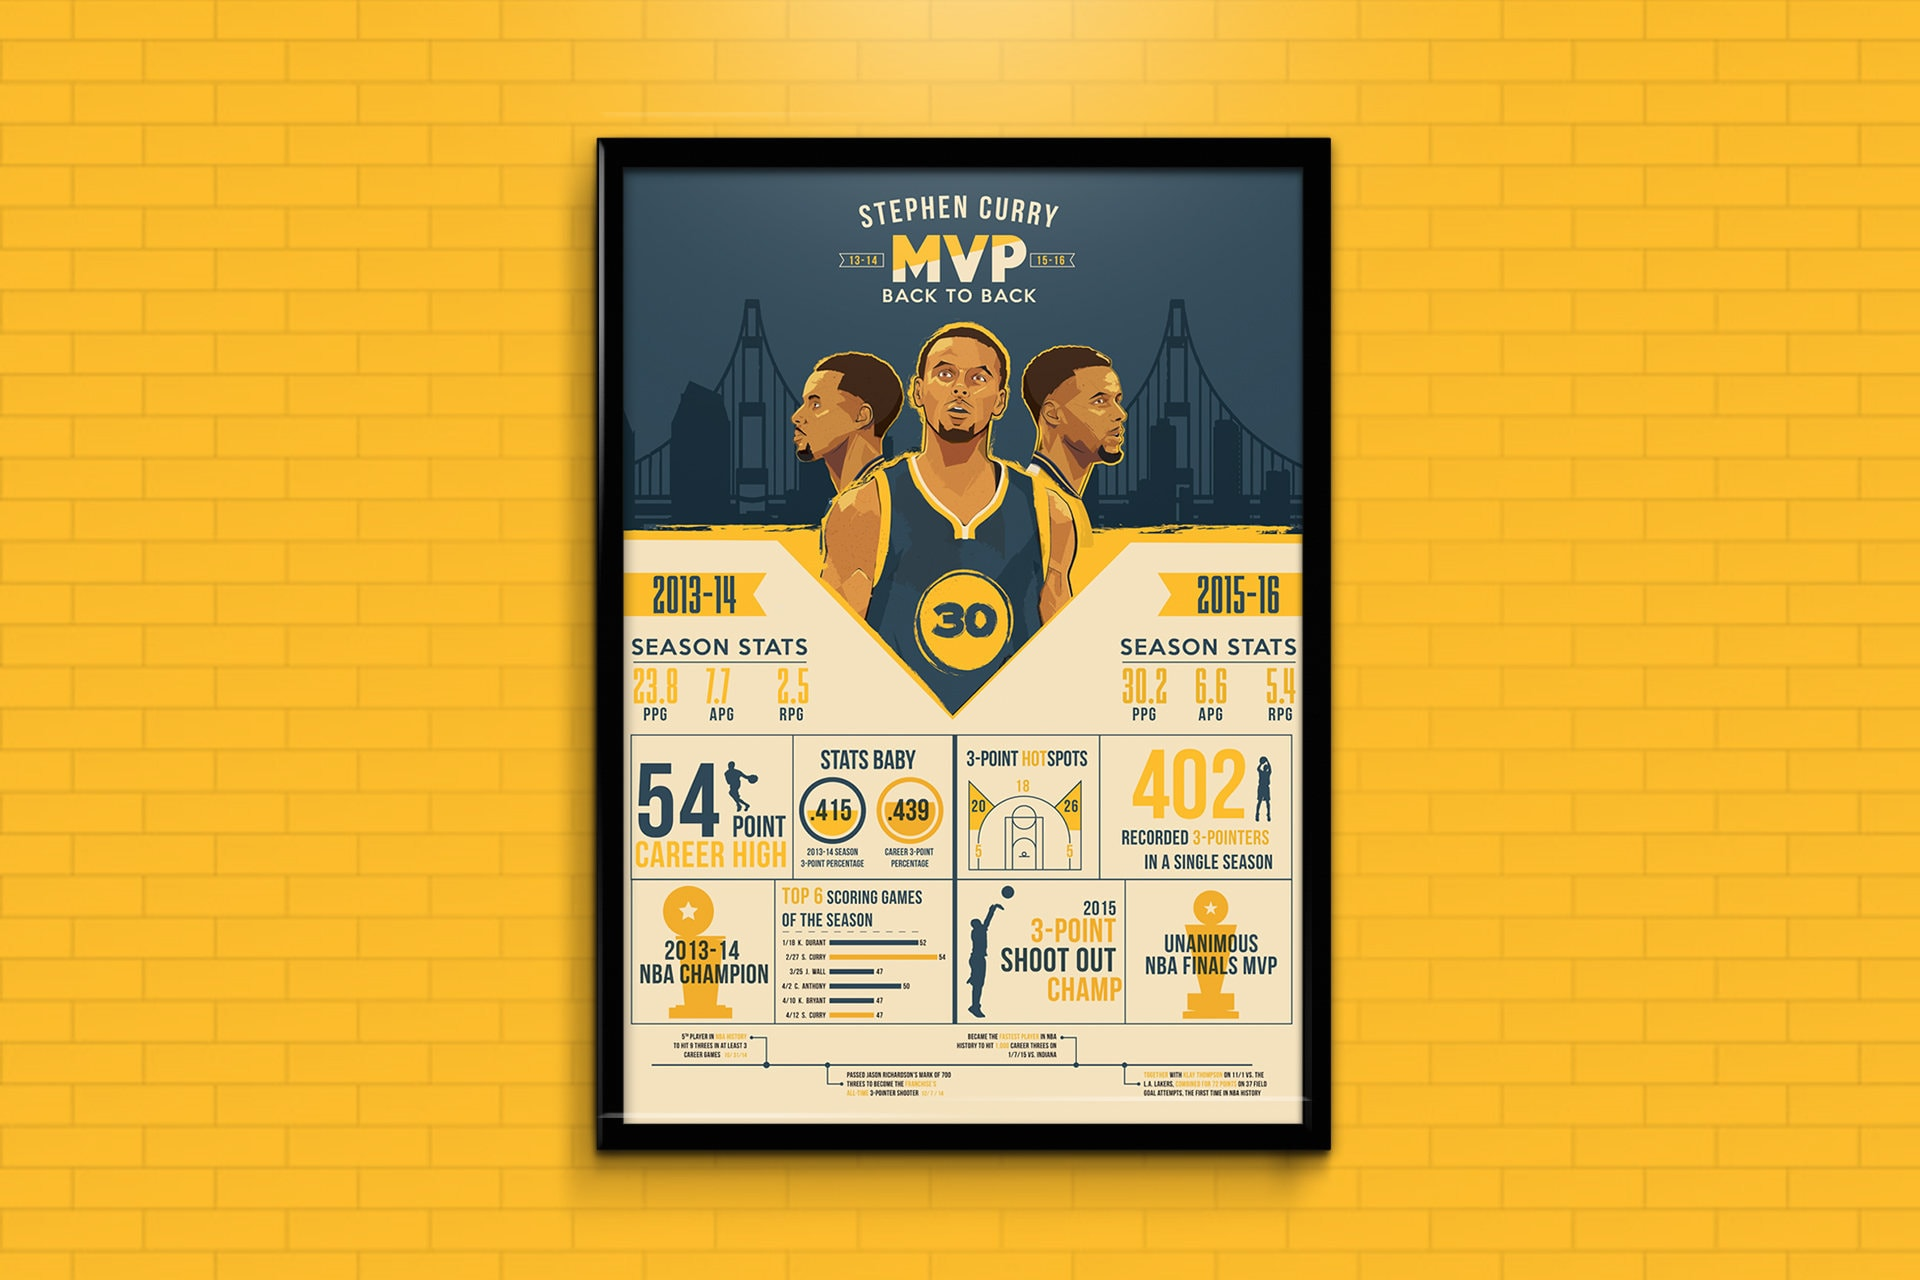 Steph Curry Poster Infographic NBA-Steph Curry Golden State